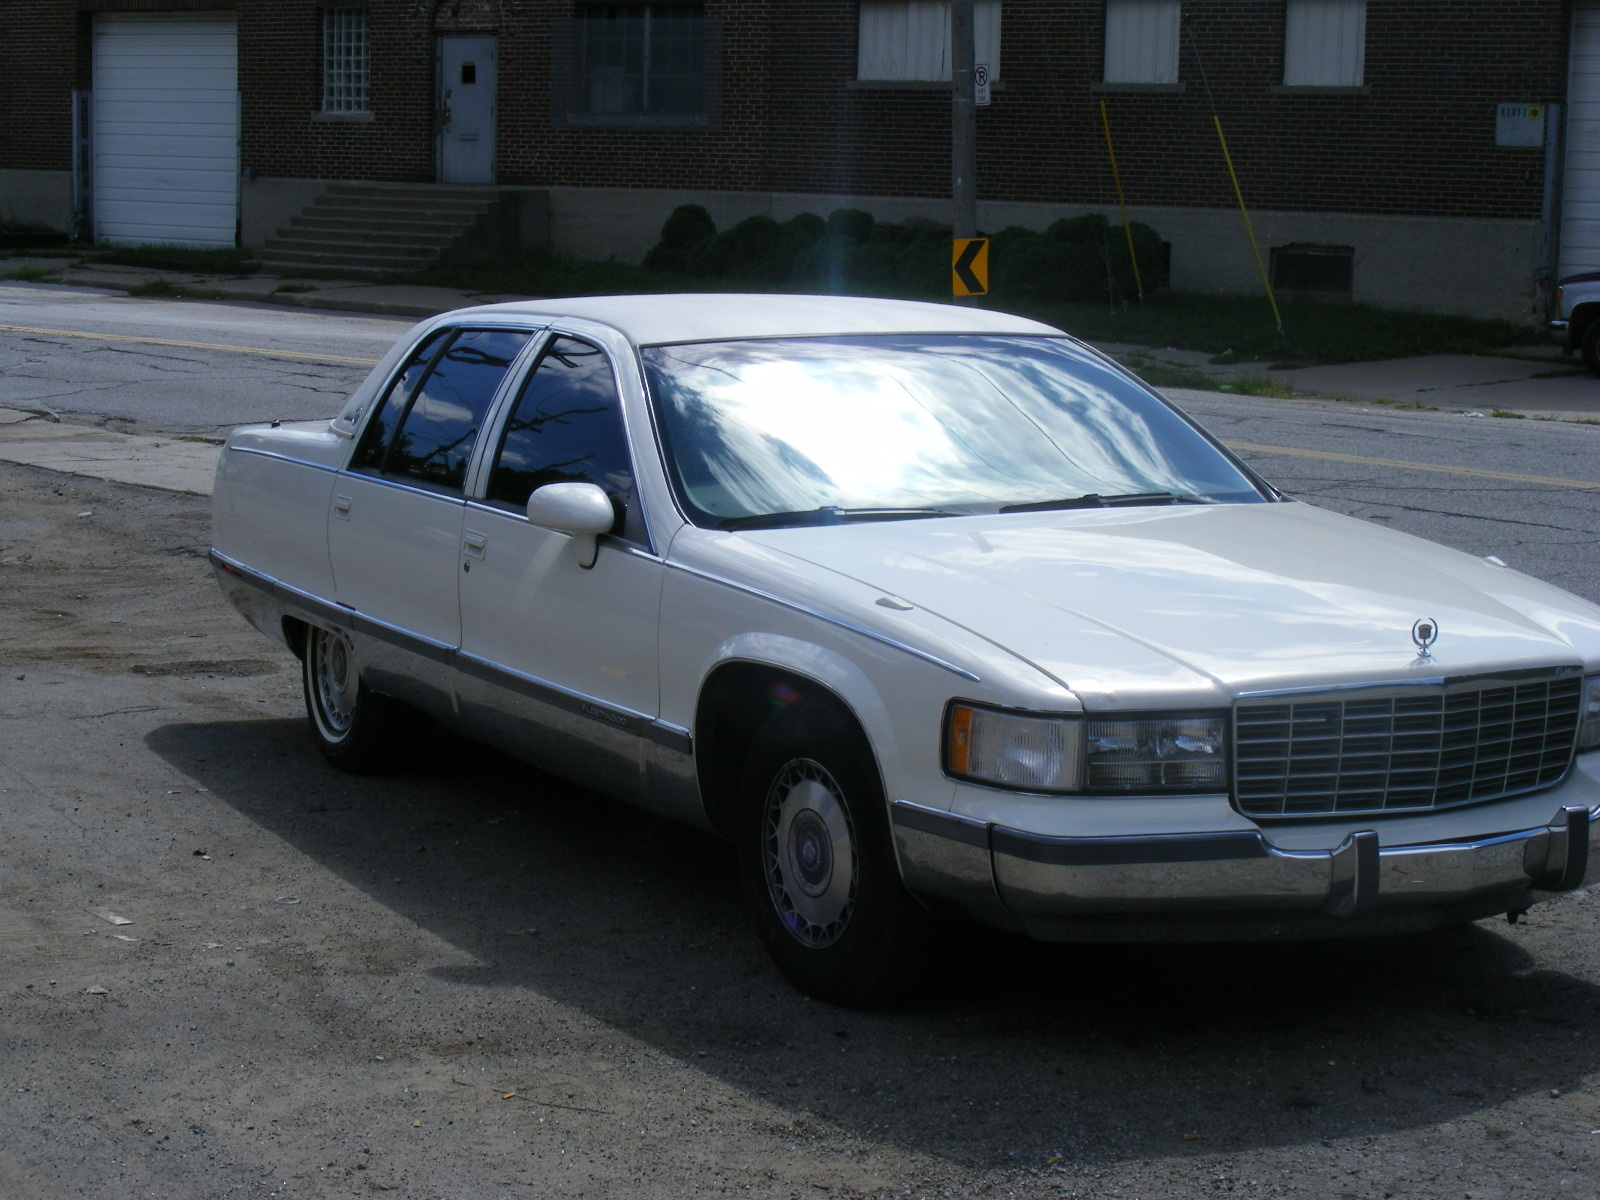 1991 Cadillac Deville Overview Cargurus Fuse Box Picture Of Fleetwood Exterior Gallery Worthy